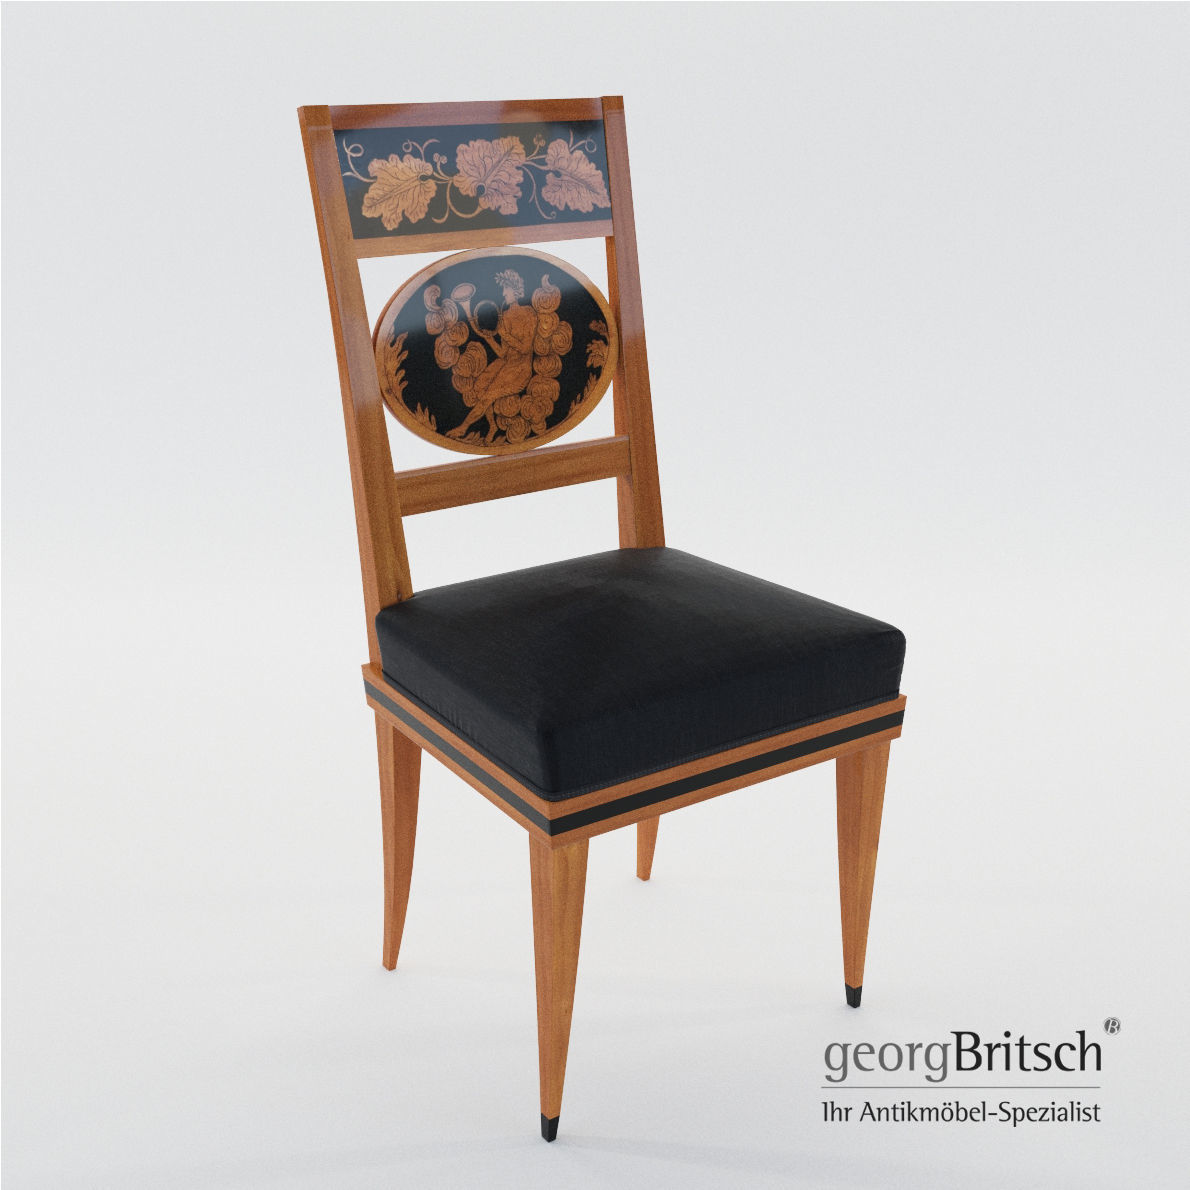 Biedermeier Chair   South Germany 1820   Georg Britsch 3d Model Max Obj Mtl  Fbx Pdf ...